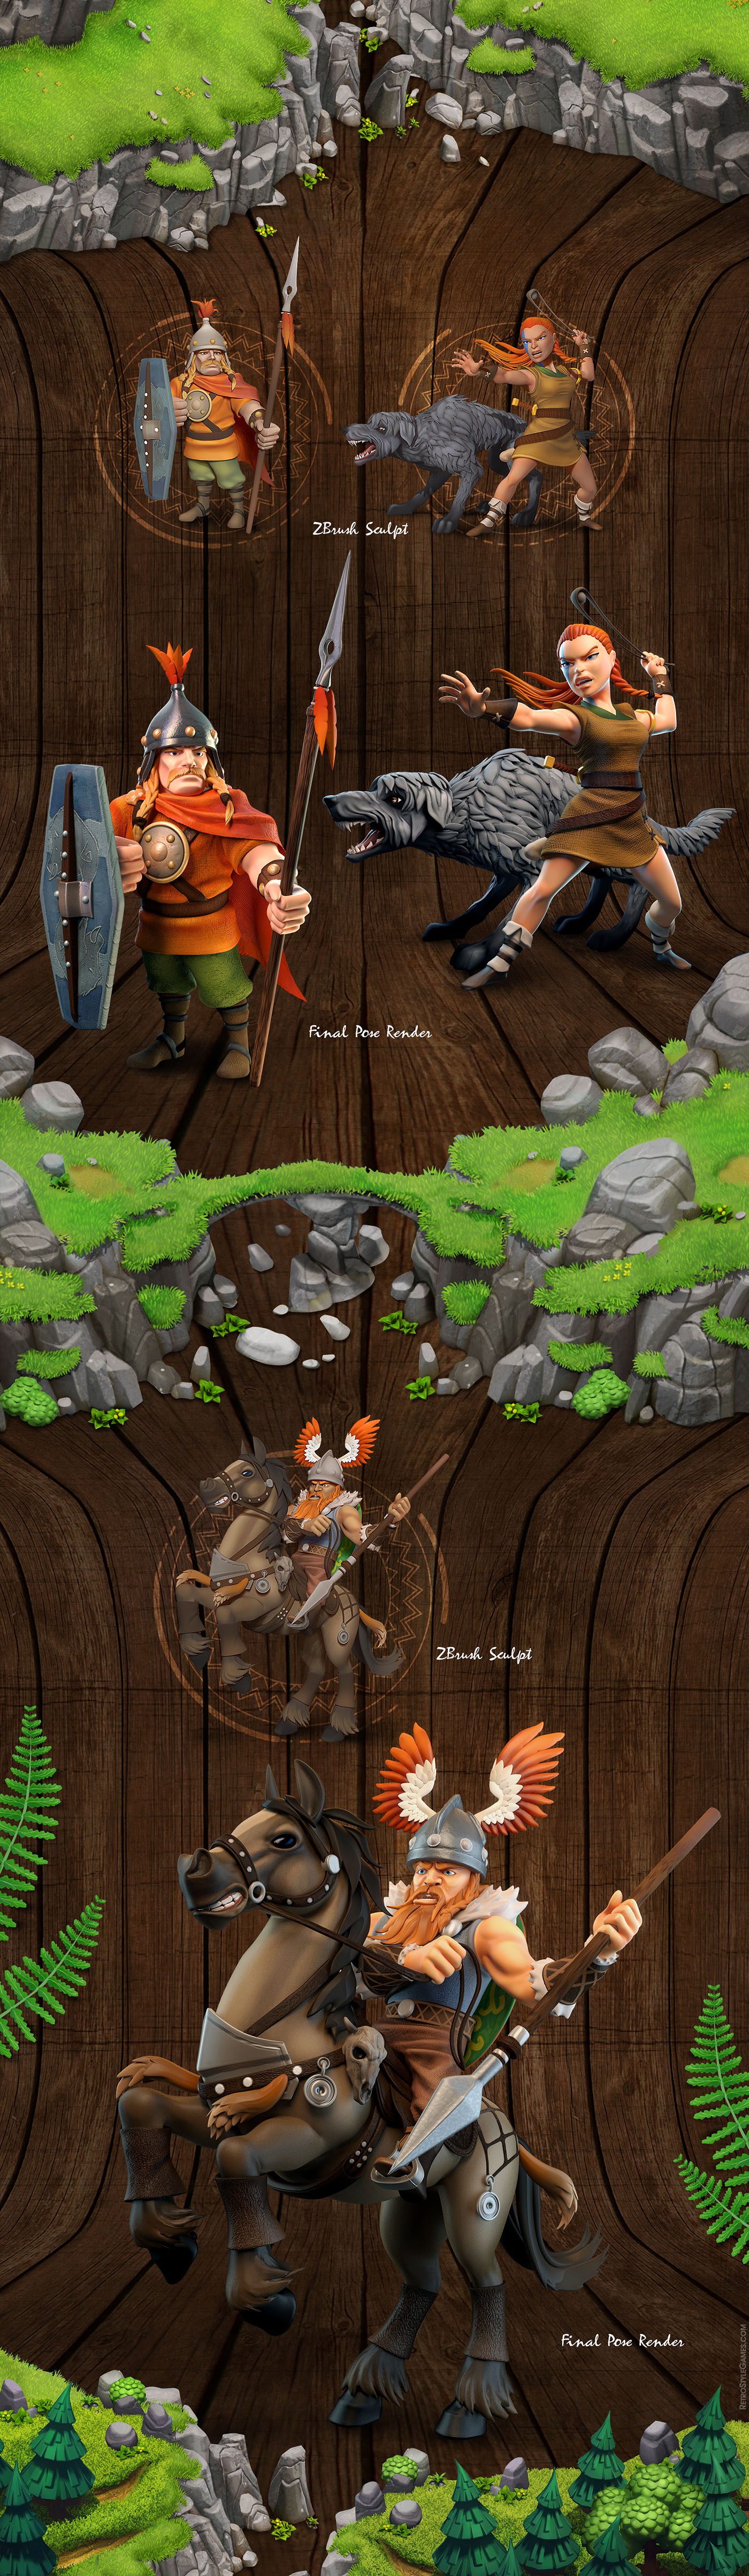 ISO Isometric Character lowpoly animations Clash clans Celtic tribes indie